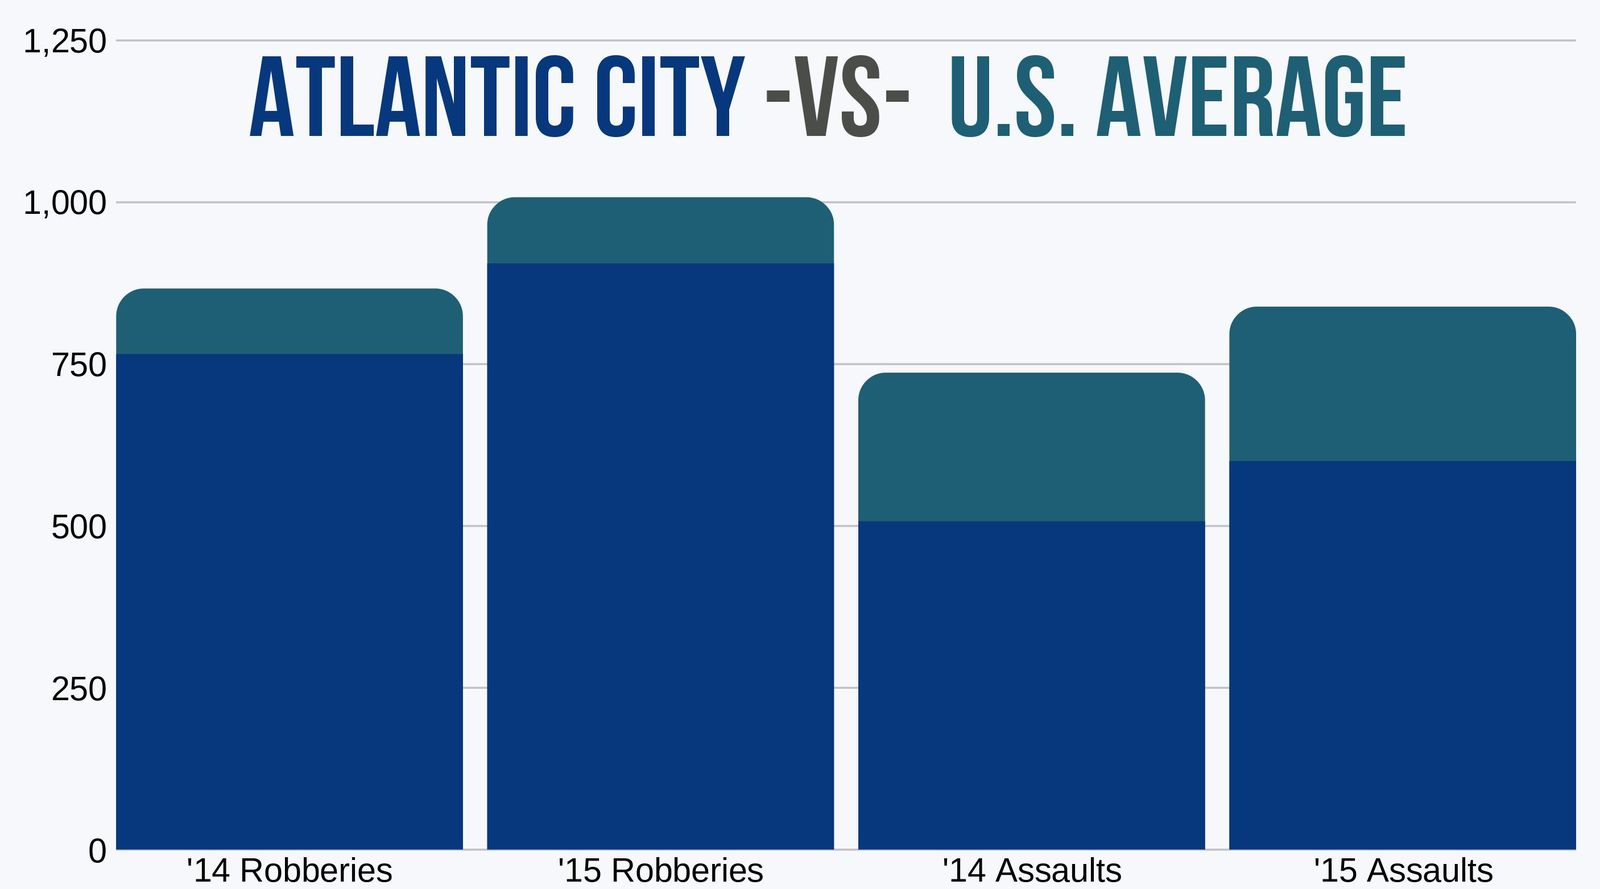 Robberies and Assaults in Atlantic City vs US Average 2014 to 2015